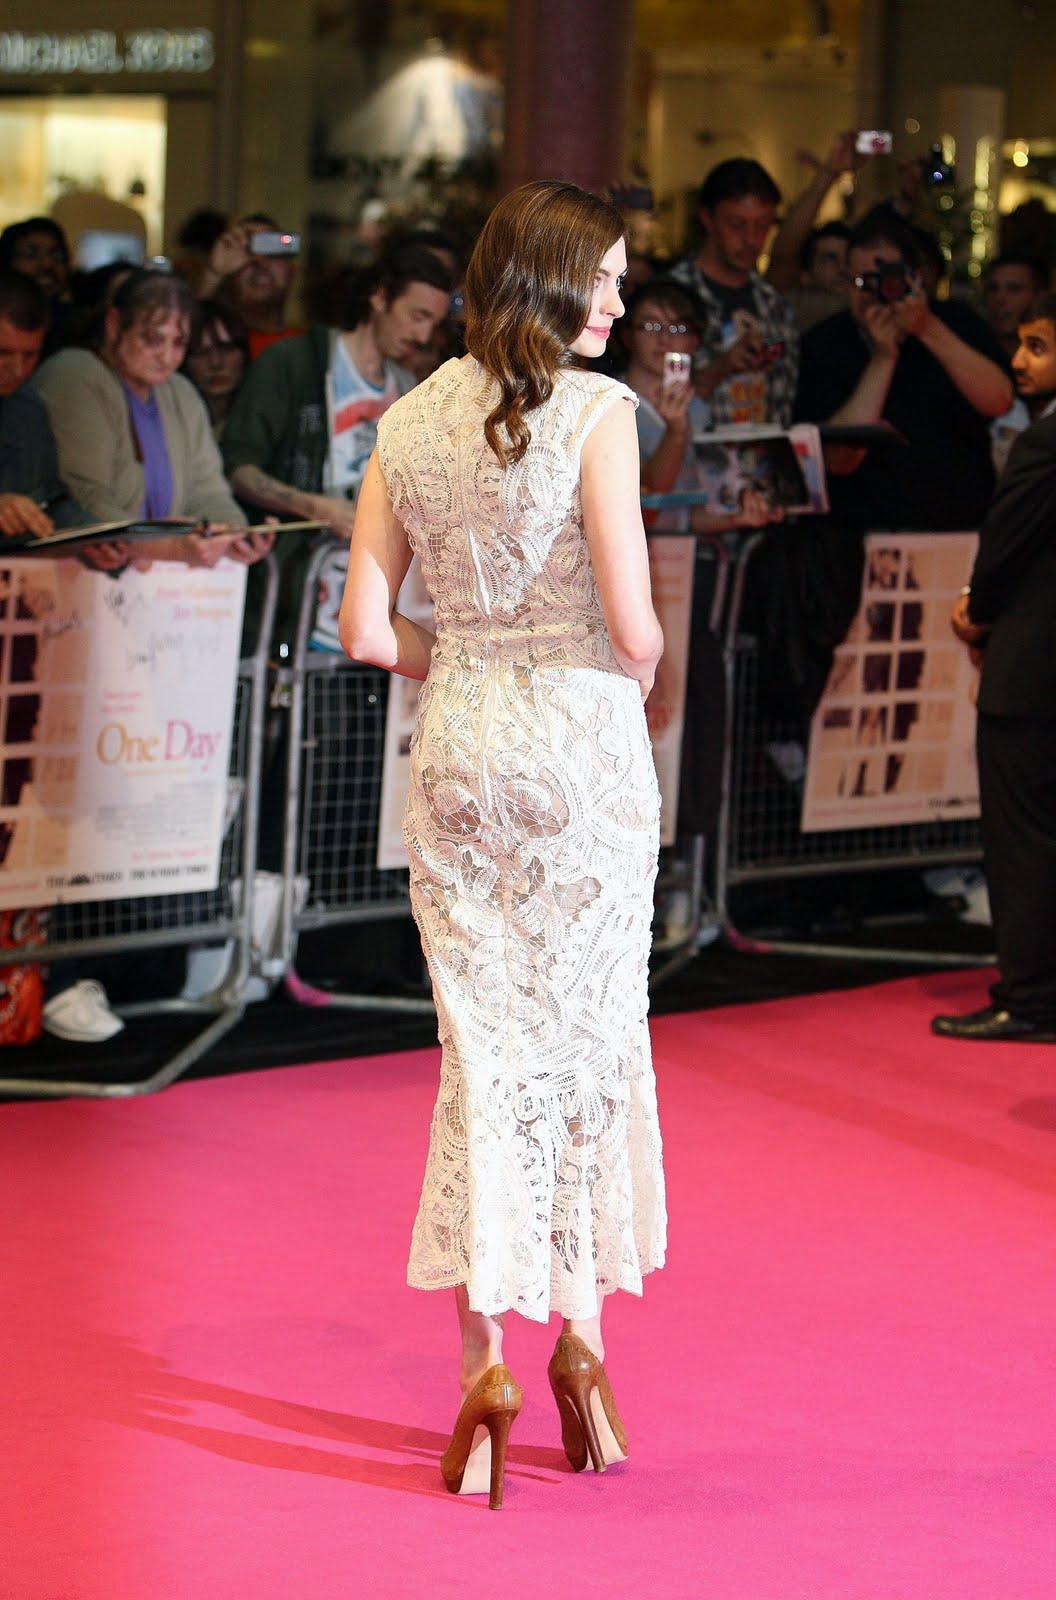 http://2.bp.blogspot.com/-8b3NcqlISHs/TmQyQ9wV0sI/AAAAAAAAA7M/VpAek2_DWrU/s1600/cu-anne-hathaway-one-day-european-premiere-in-london-30.jpg